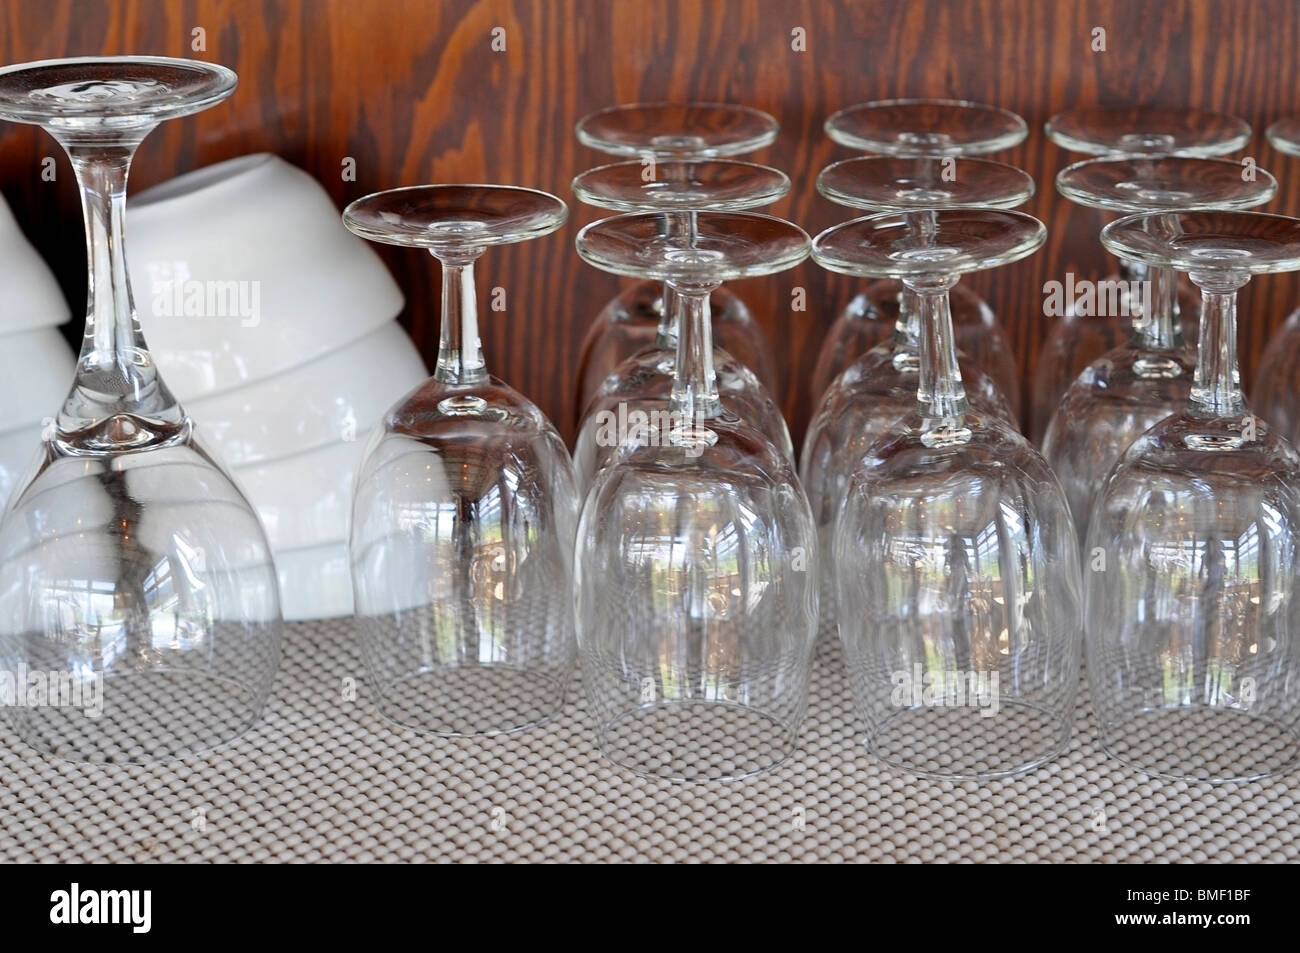 Empty Glasses on Shelf. - Stock Image